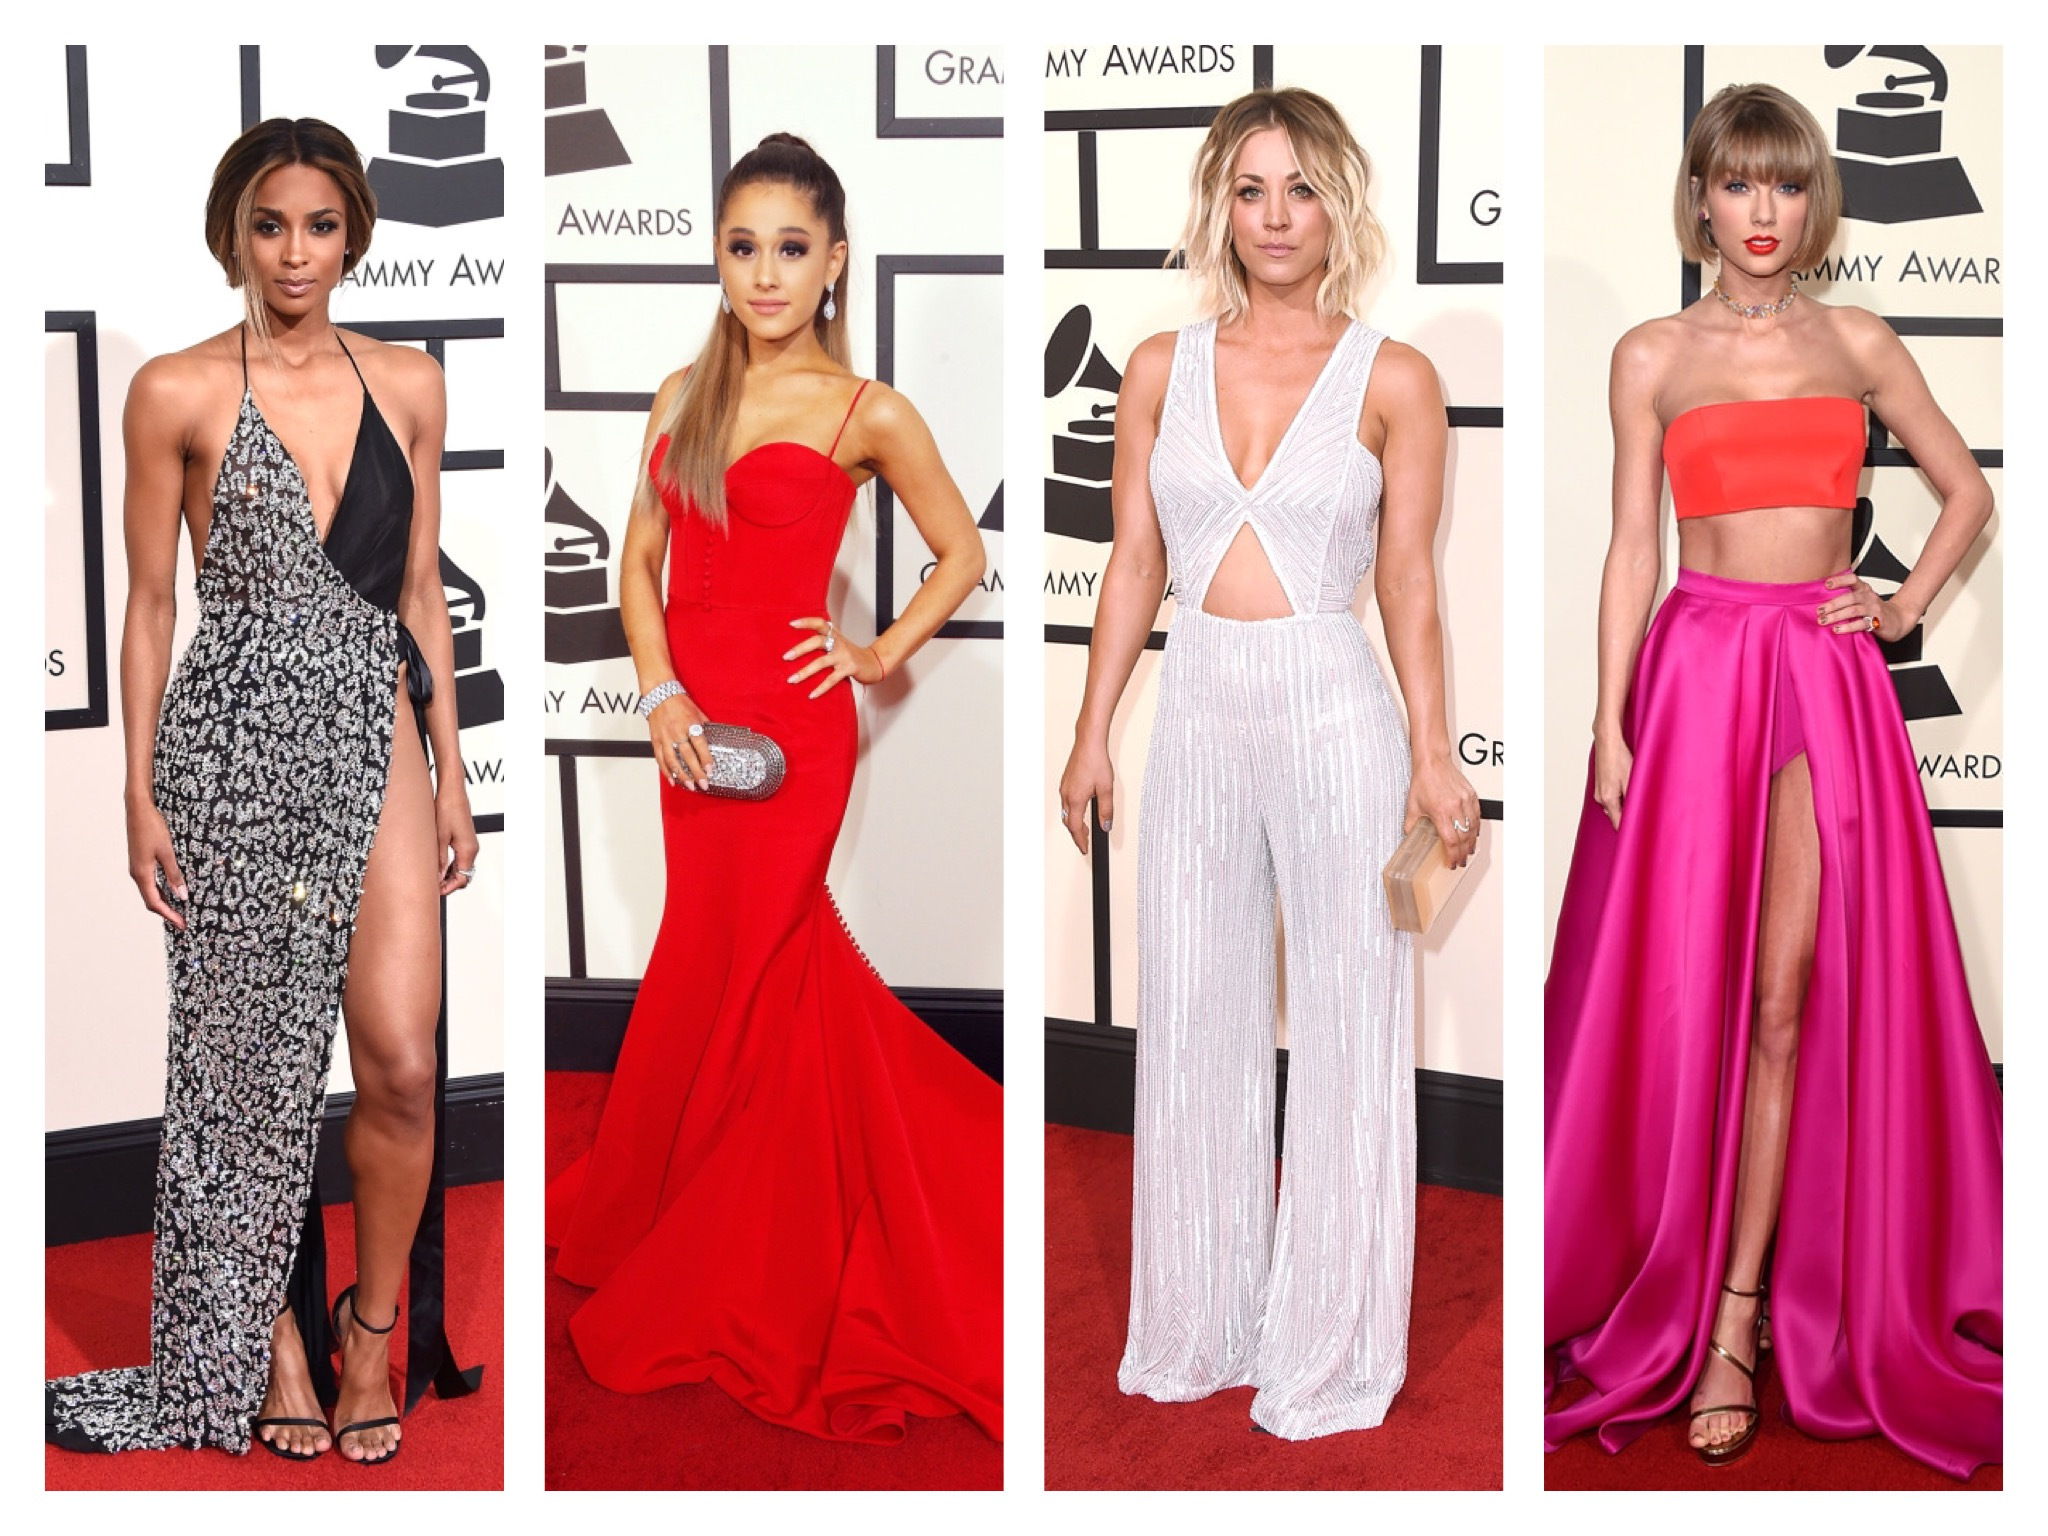 2016 GRAMMYS Best Dressed List - Taylor Swift & Ciara